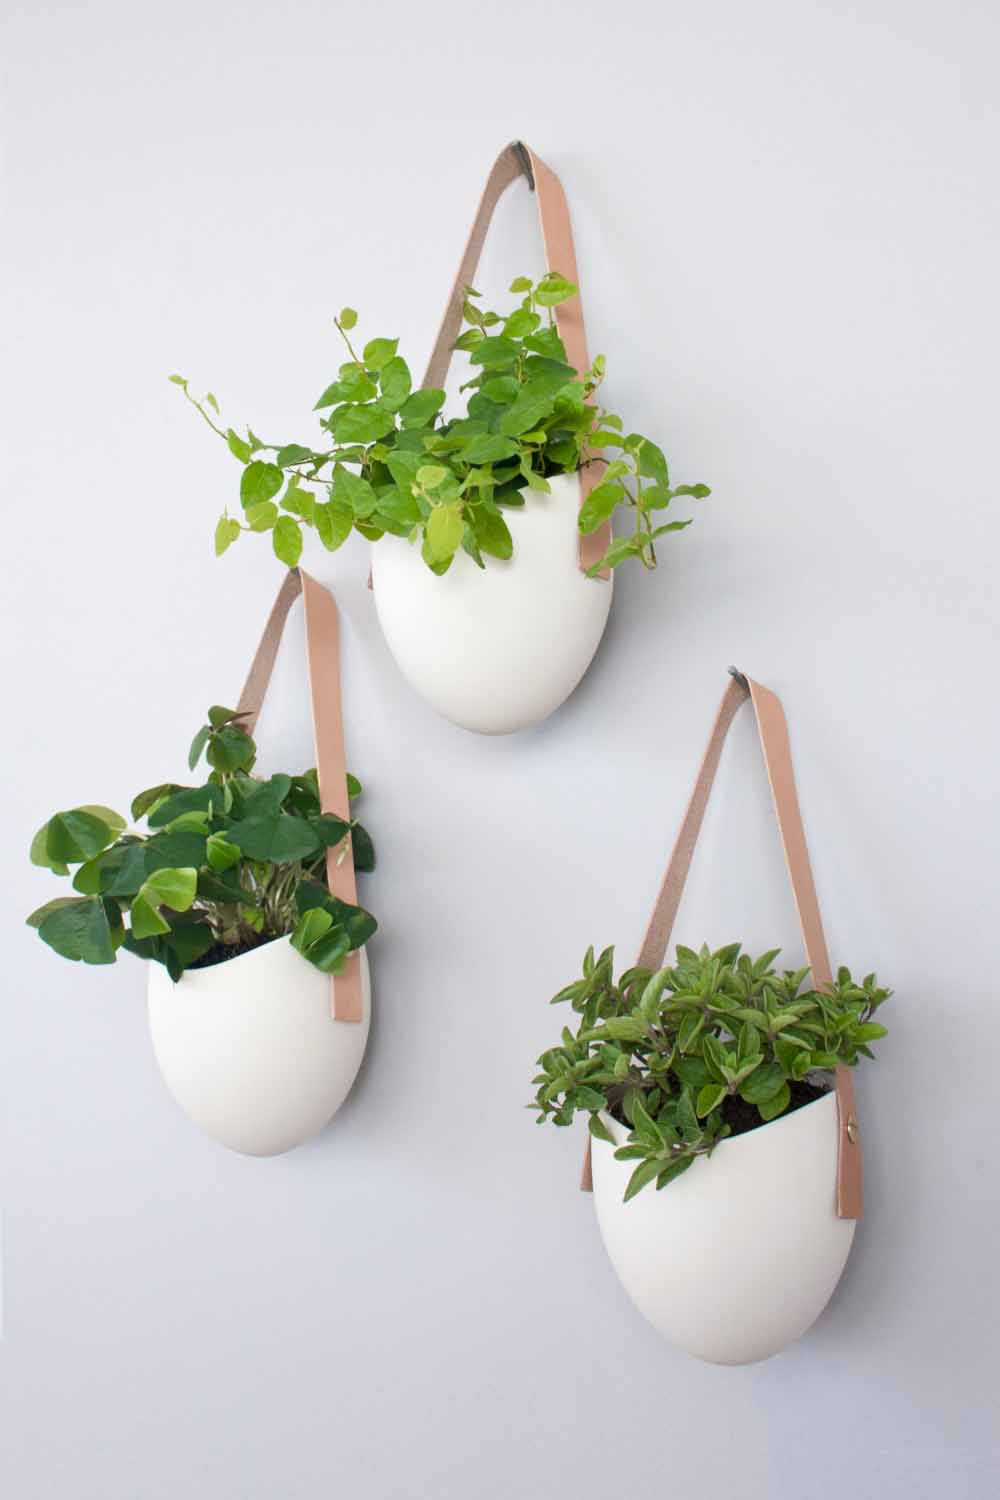 High Fired Porcelain Planters - 15 Elegant Hanging Planters For Urban Homes LivingHours